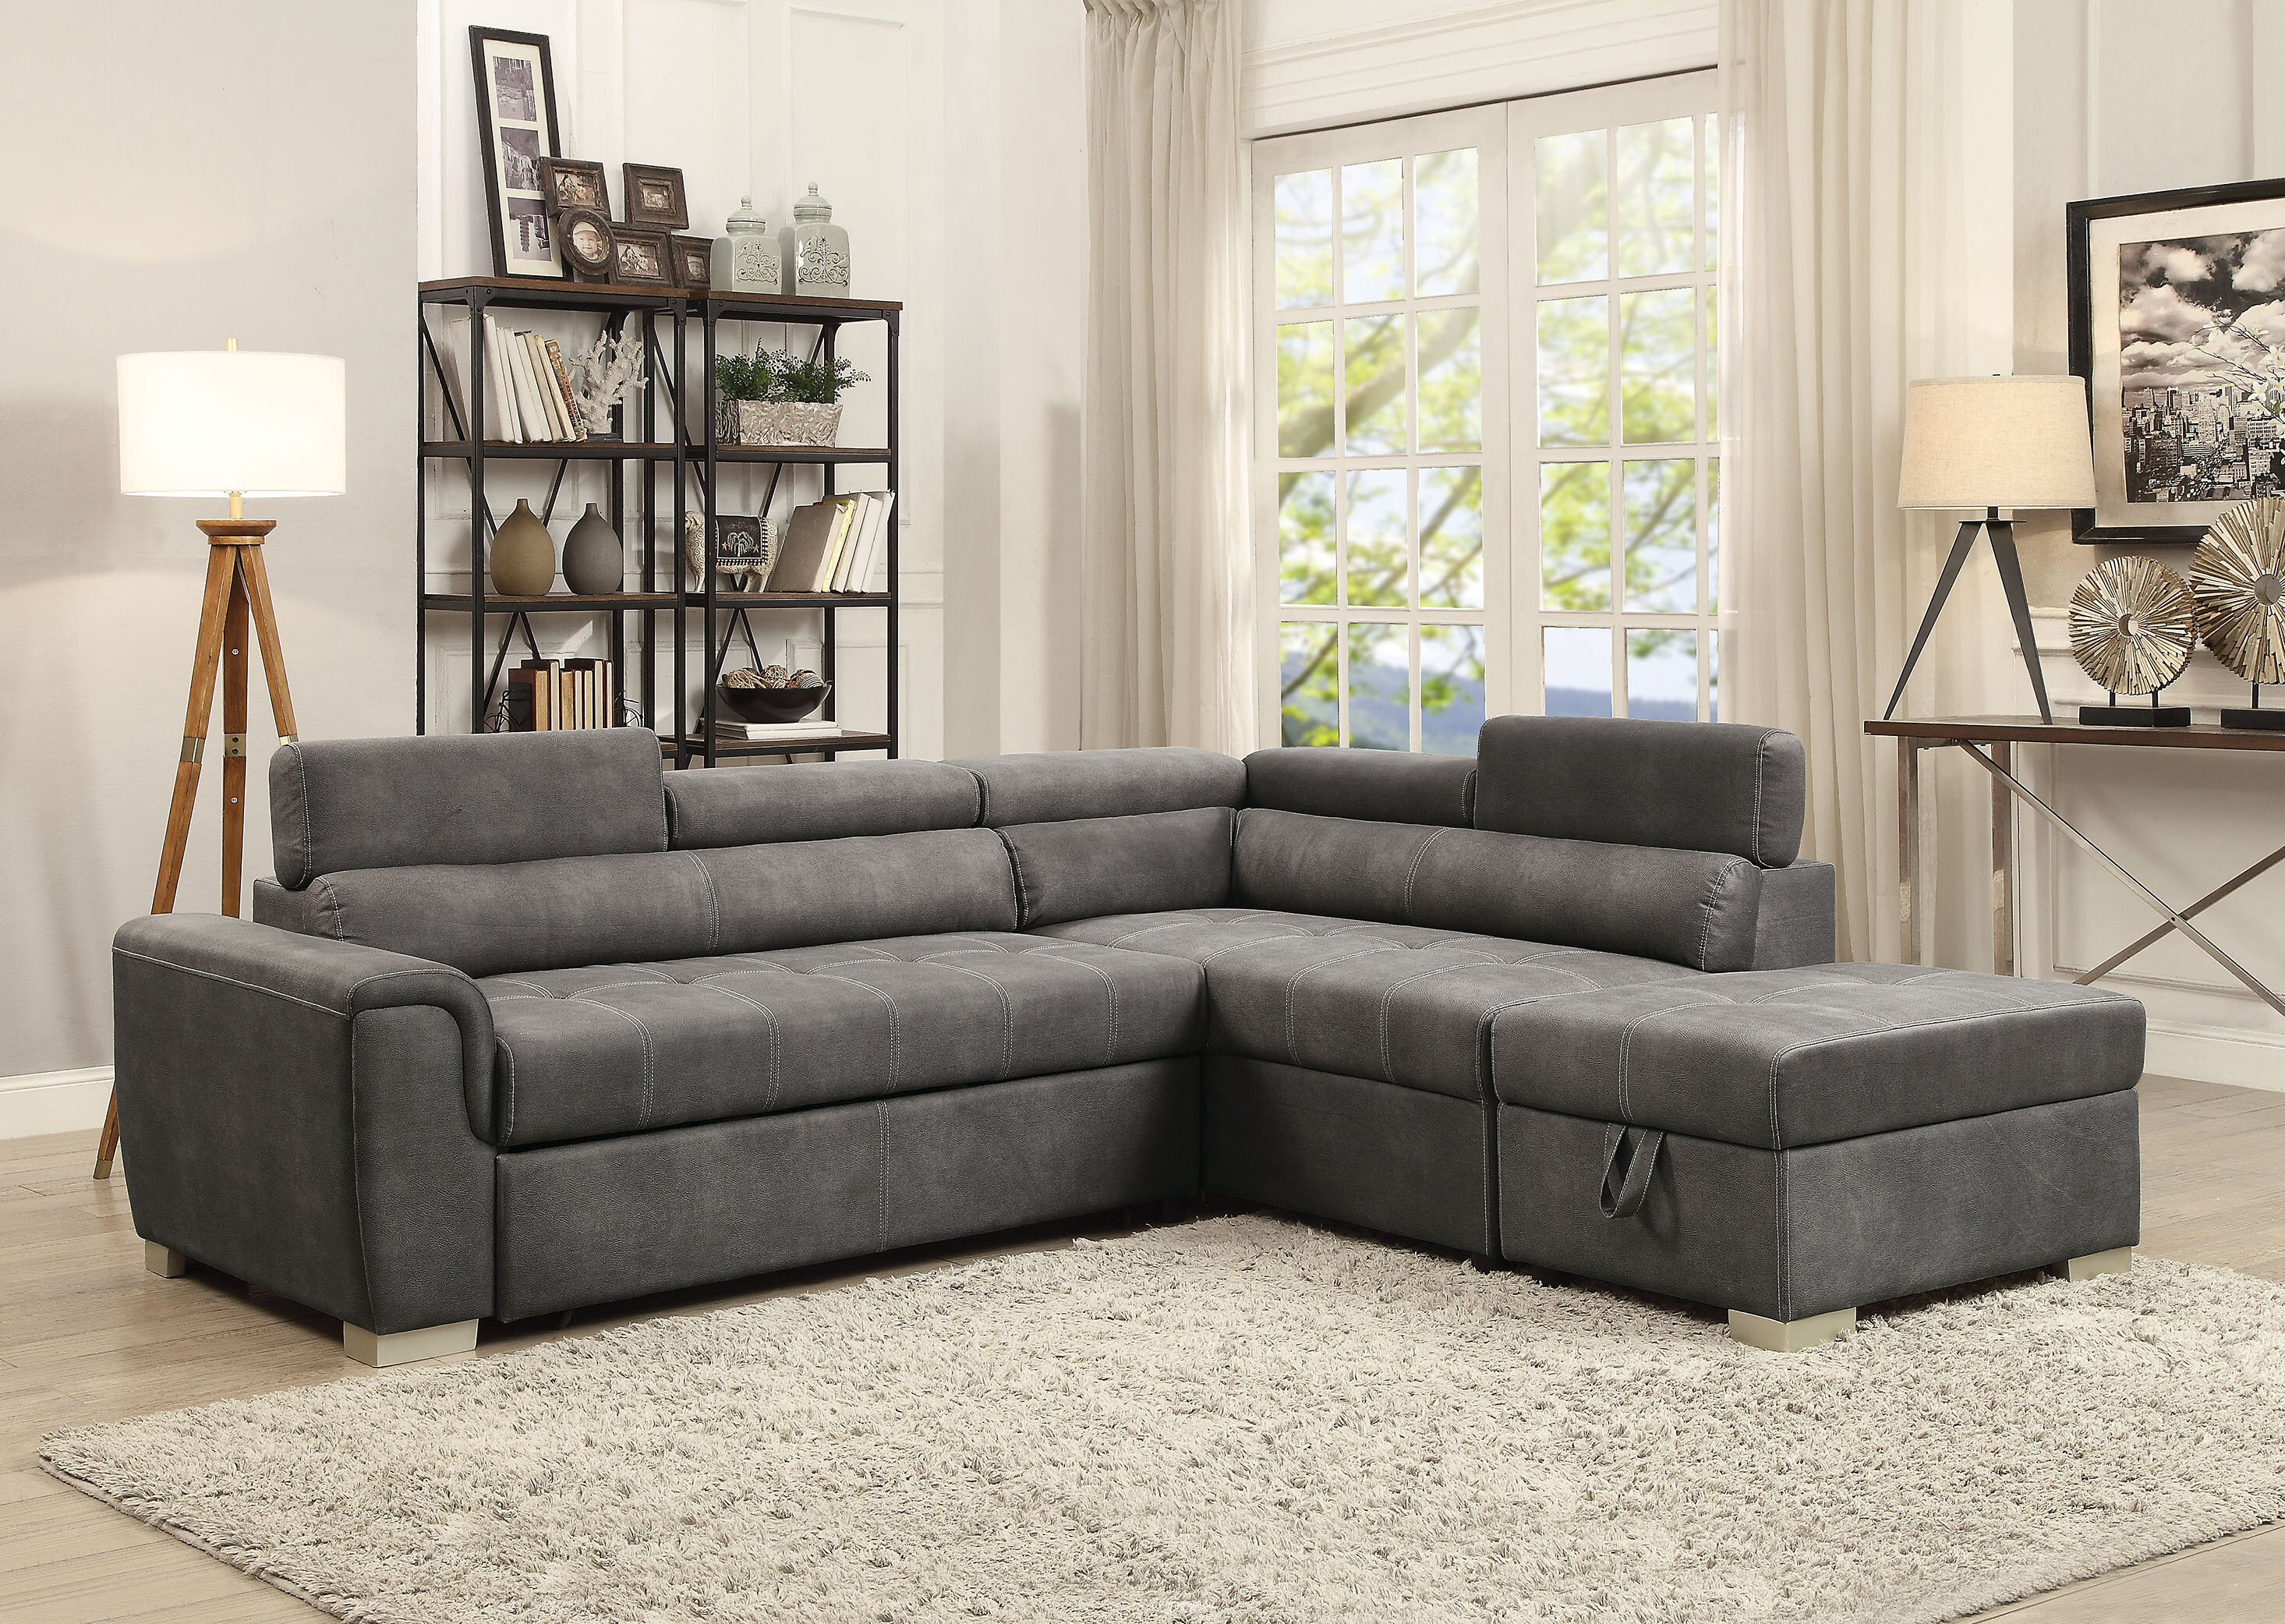 Brayden studio truesdale sleeper sectional with ottoman wayfair ca